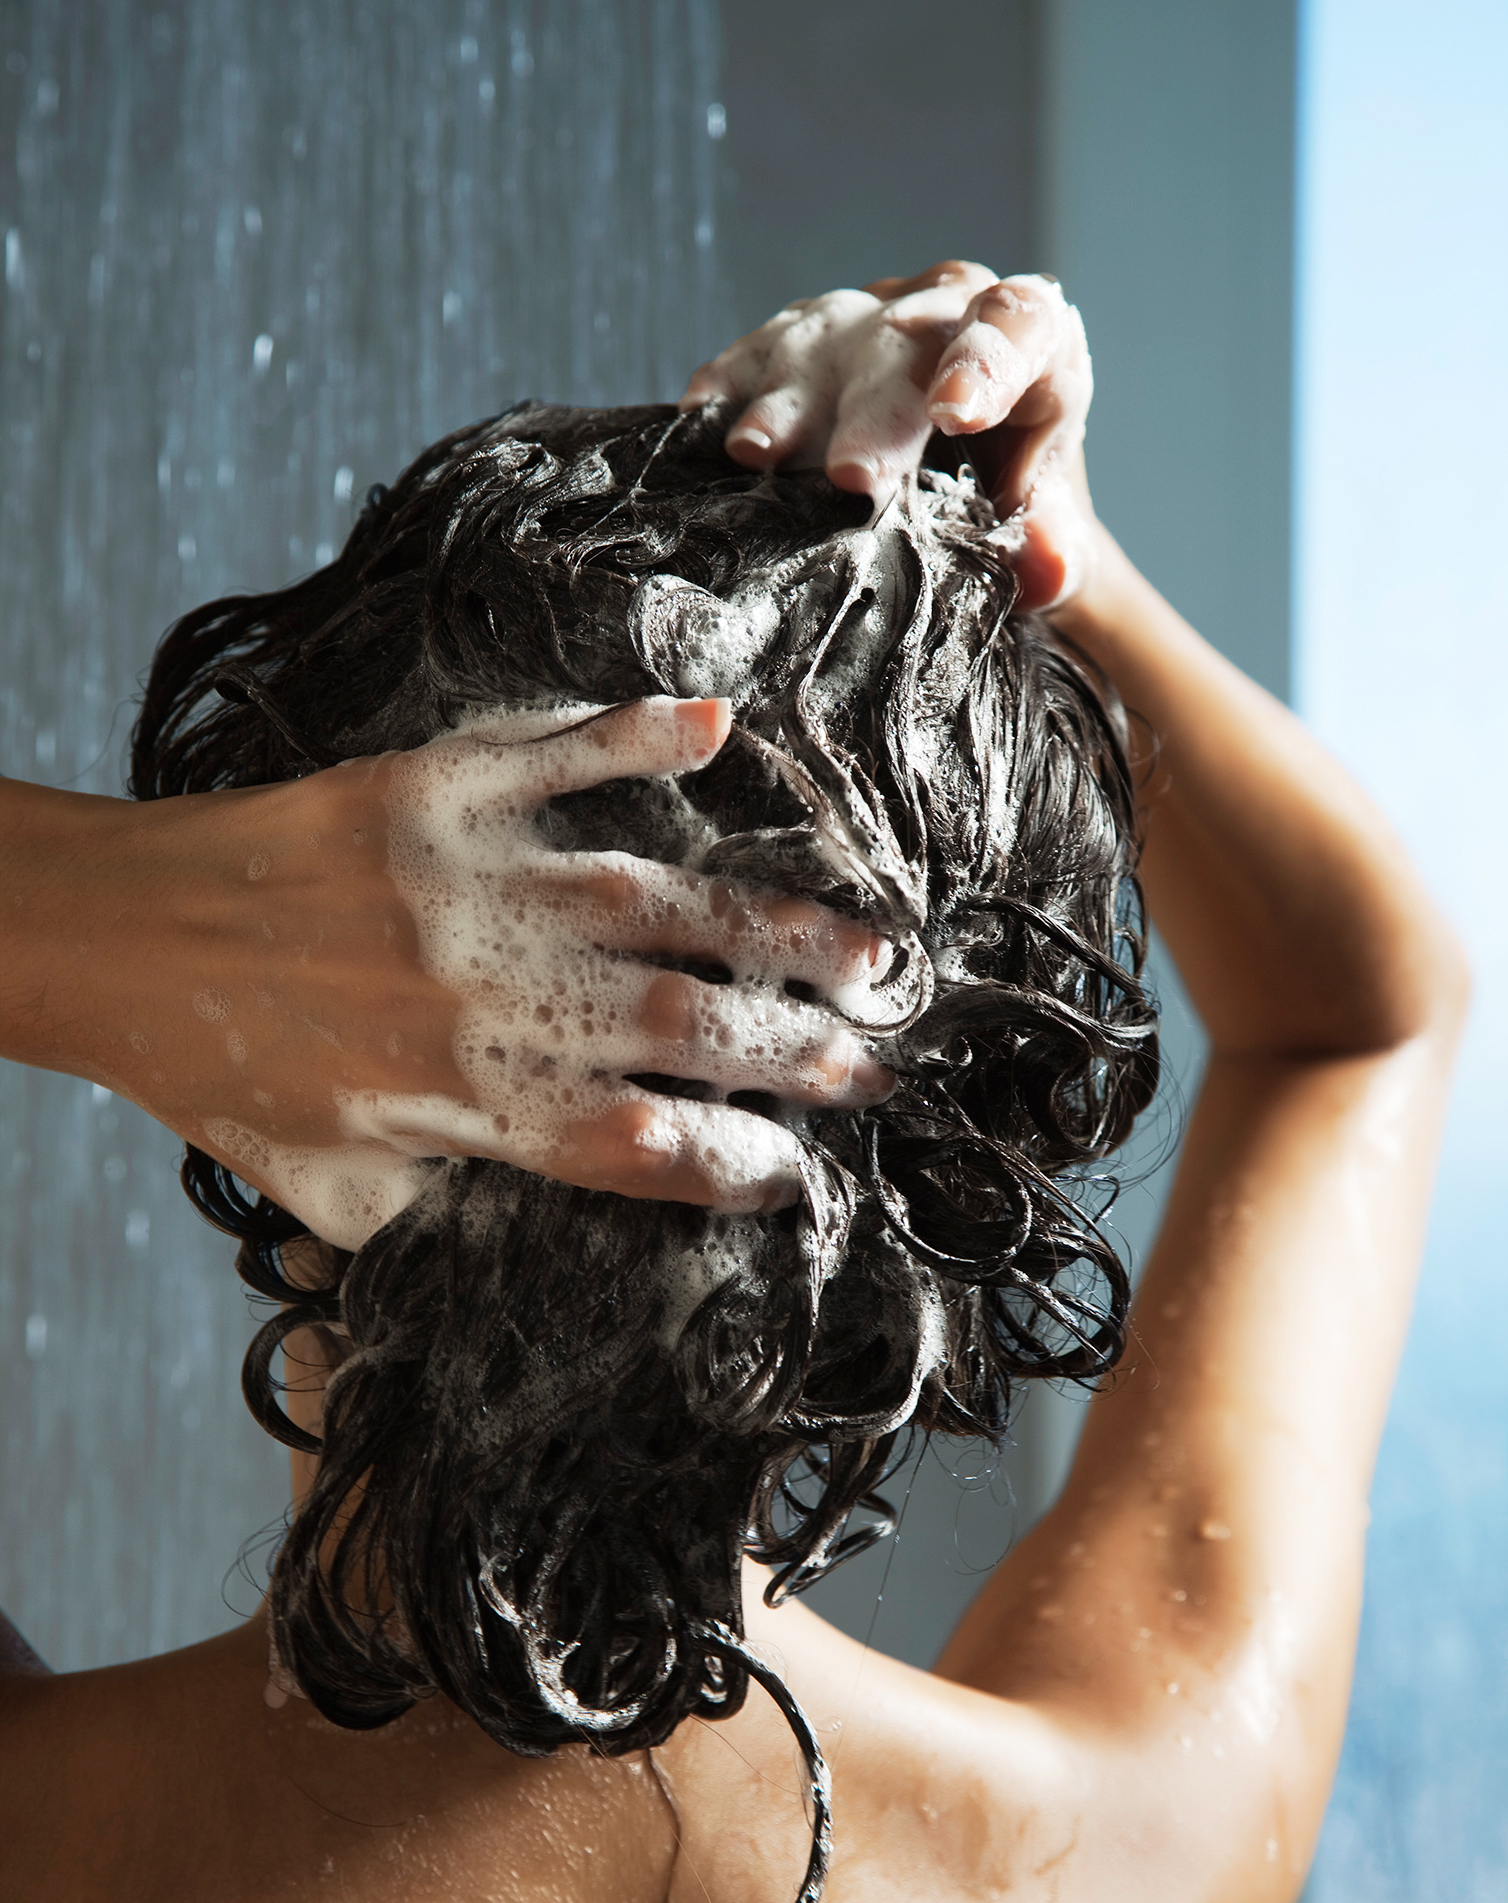 Asked and Answered: How Long Should it Take to Shampoo Your Hair?